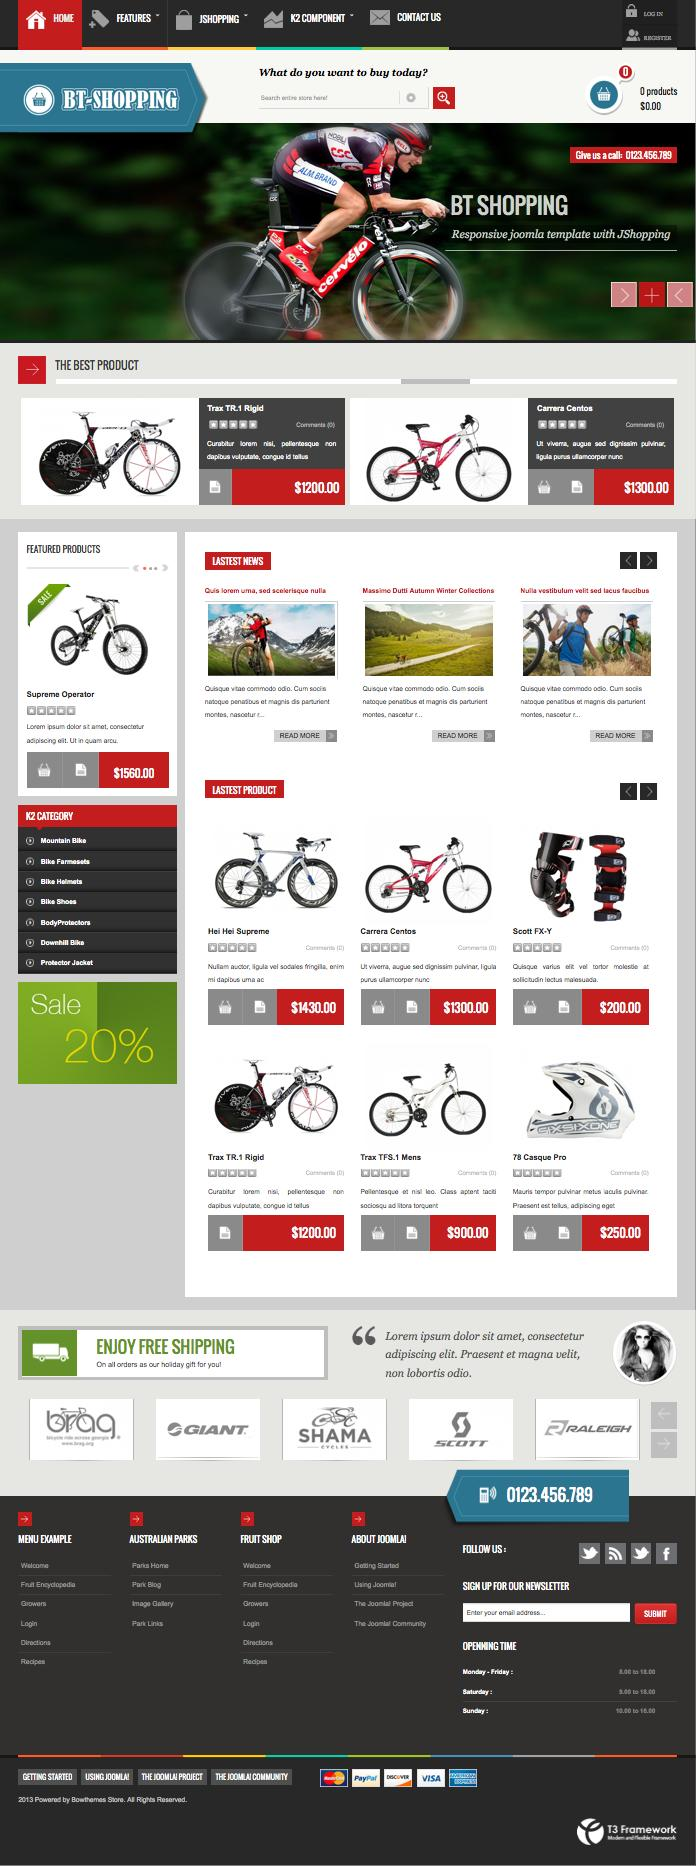 BT Shopping Joomla JoomShopping Template